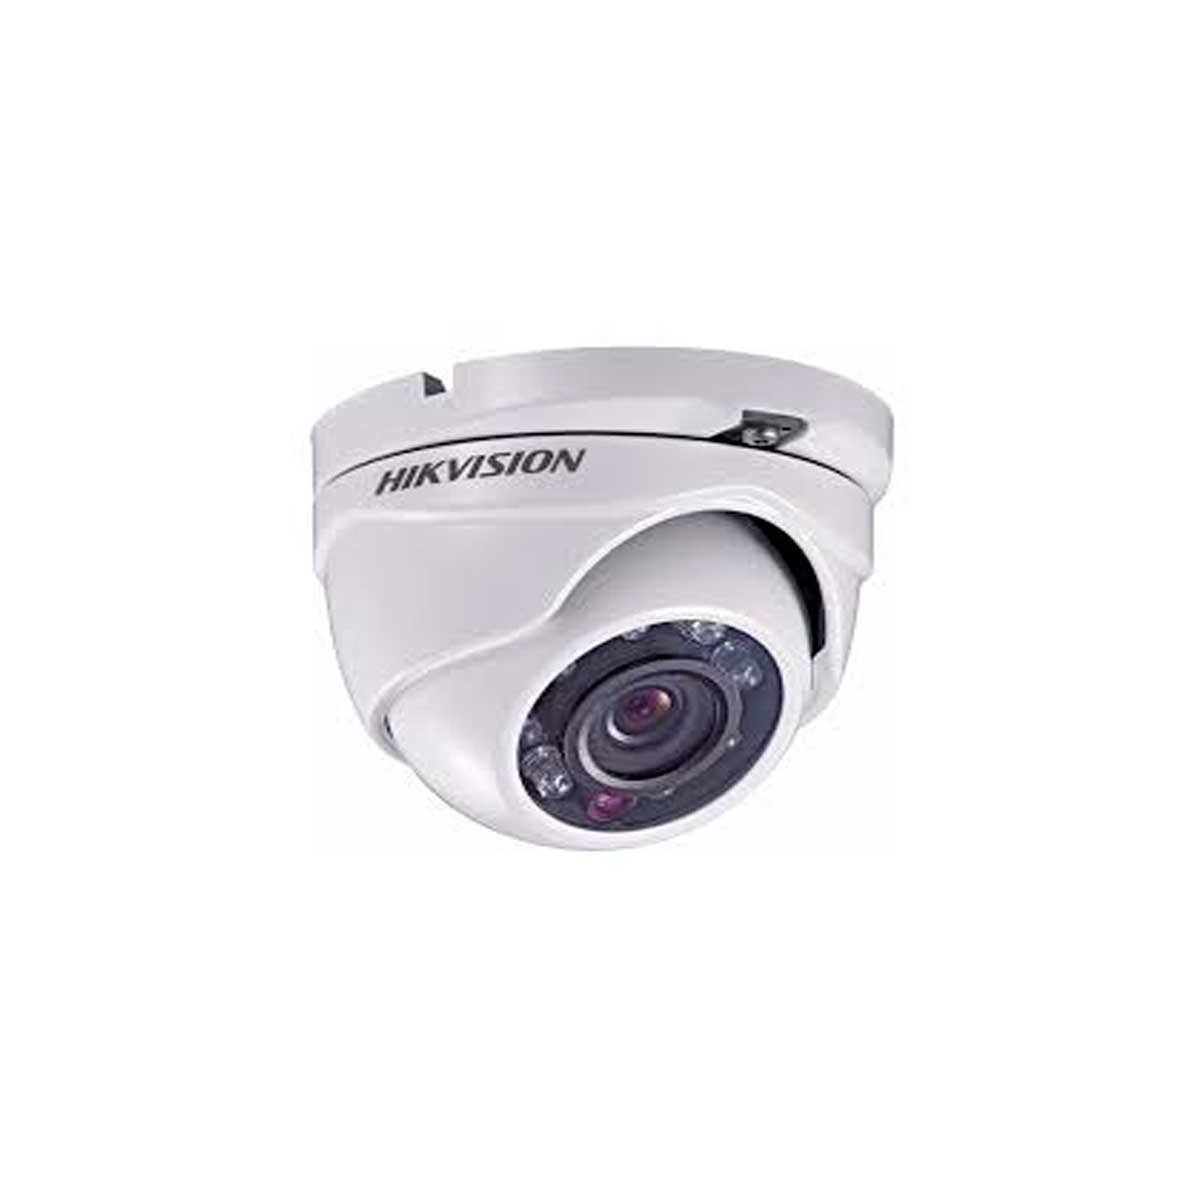 Cámara Hikvision Turbo HD Tipo Domo DS-2CE56C0T-IRM